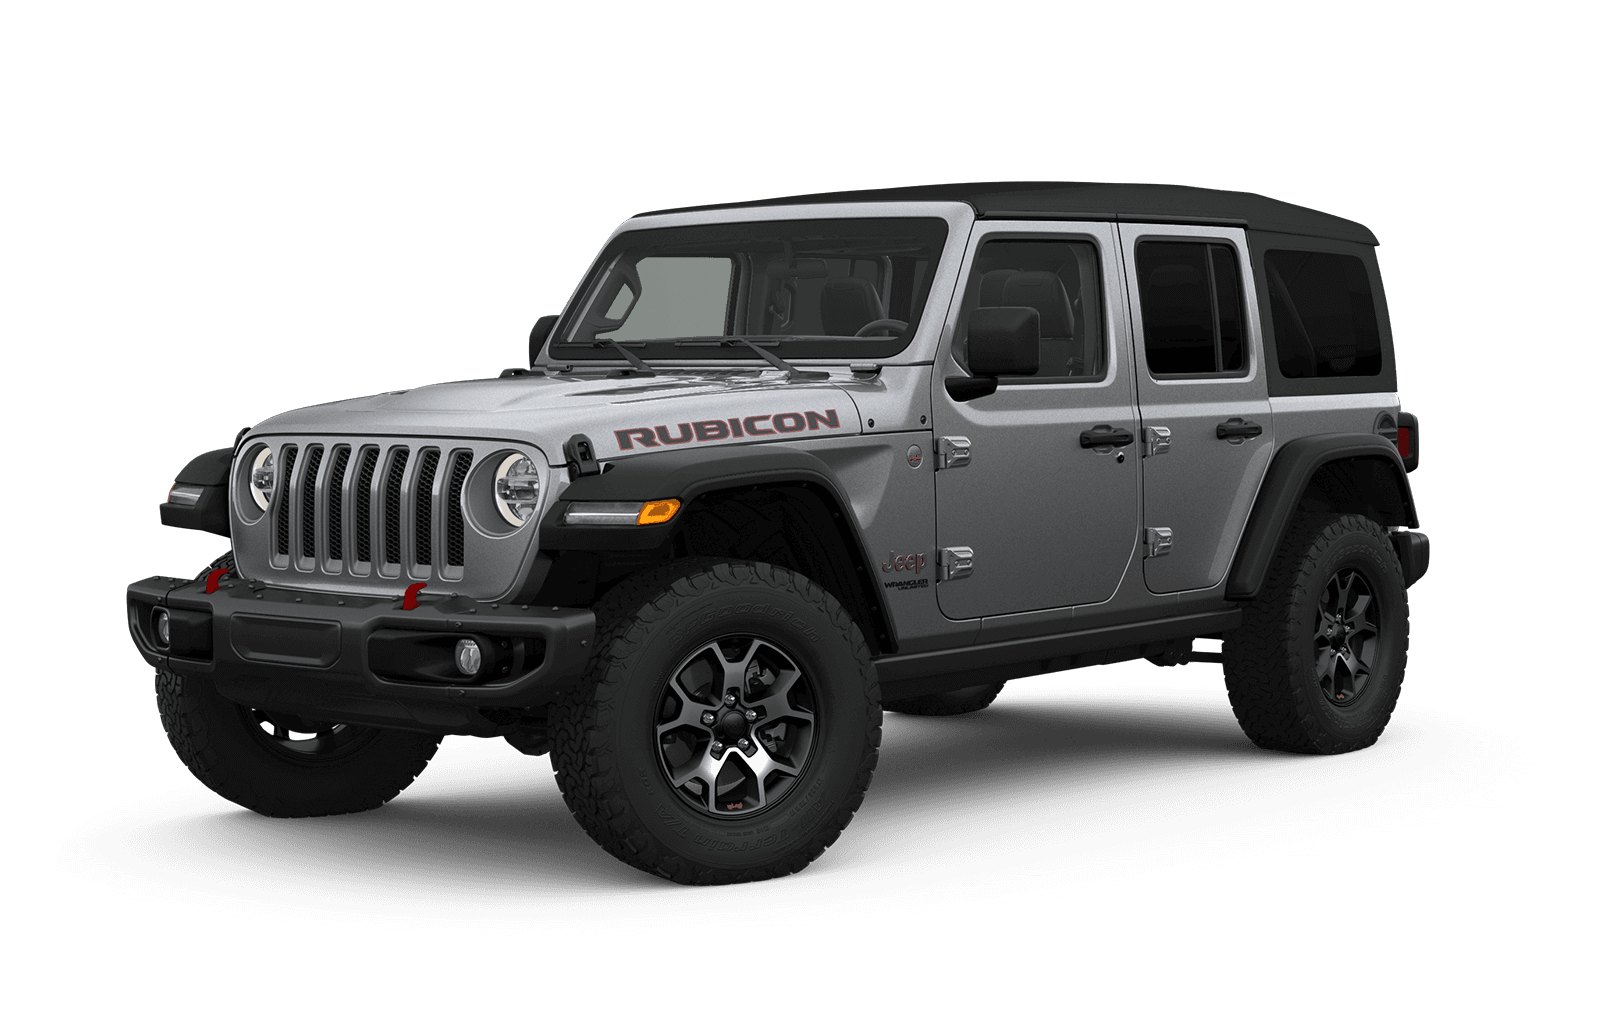 2019 Jeep Wrangler Full View in light grey with Wheels